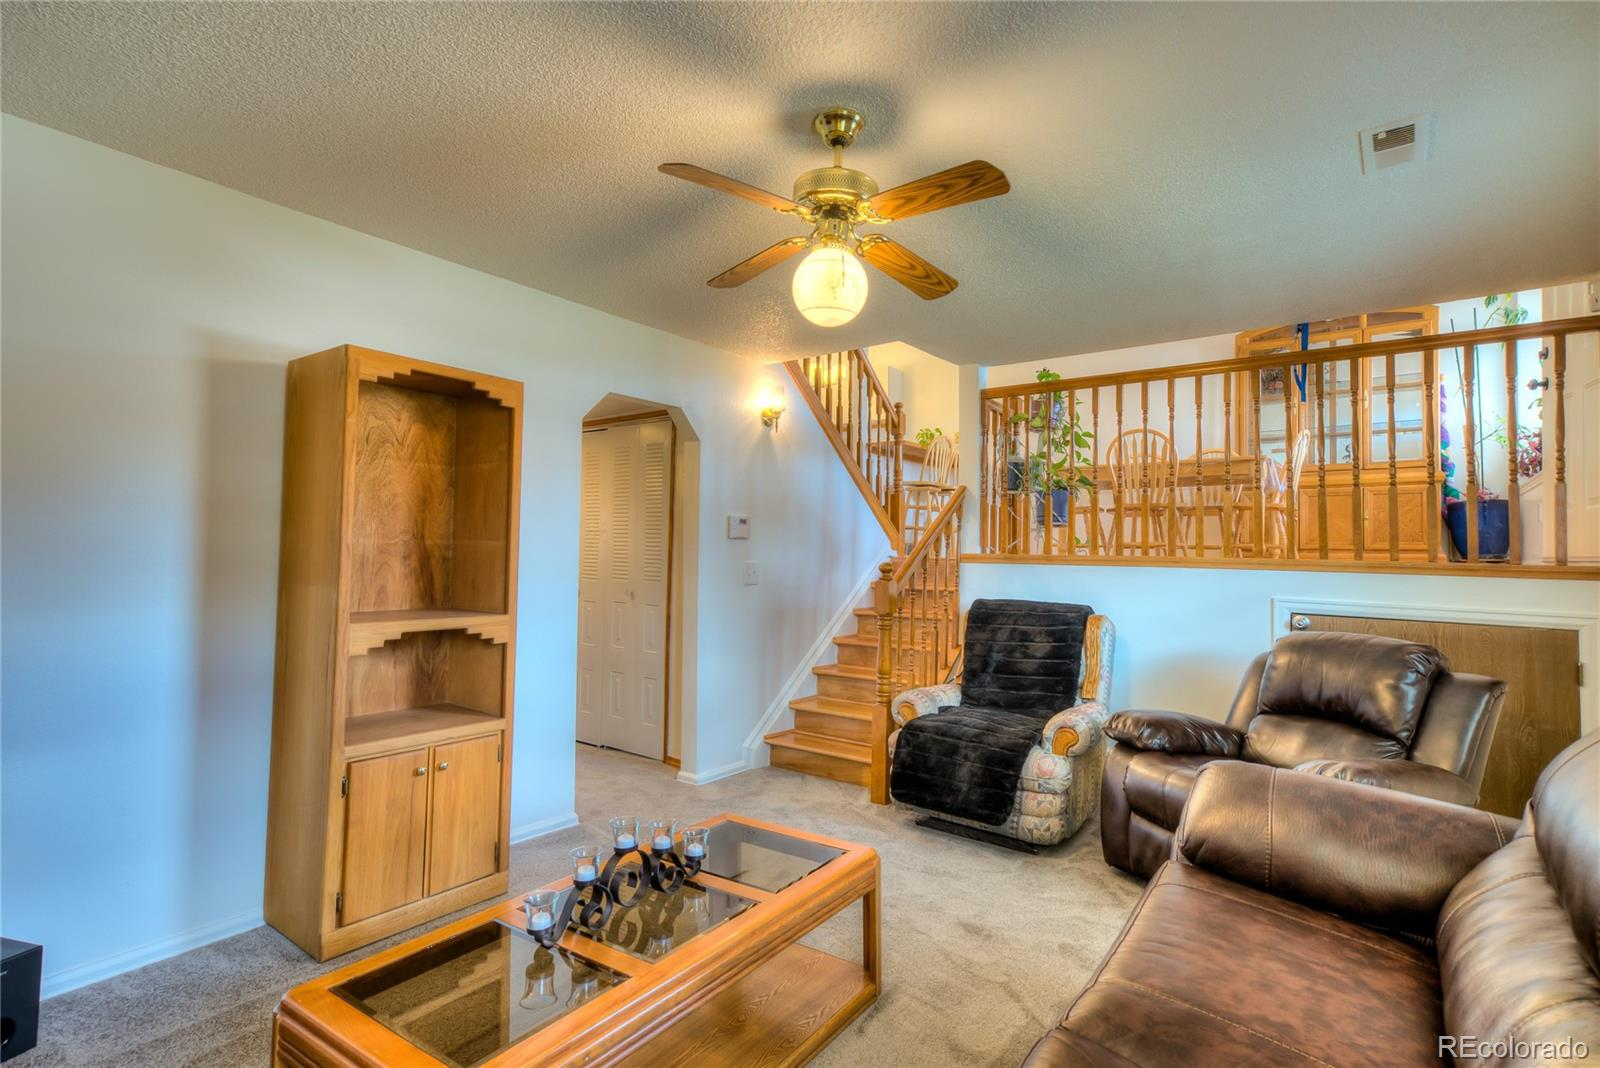 MLS# 2811379 - 20 - 9645 W David Avenue, Littleton, CO 80128